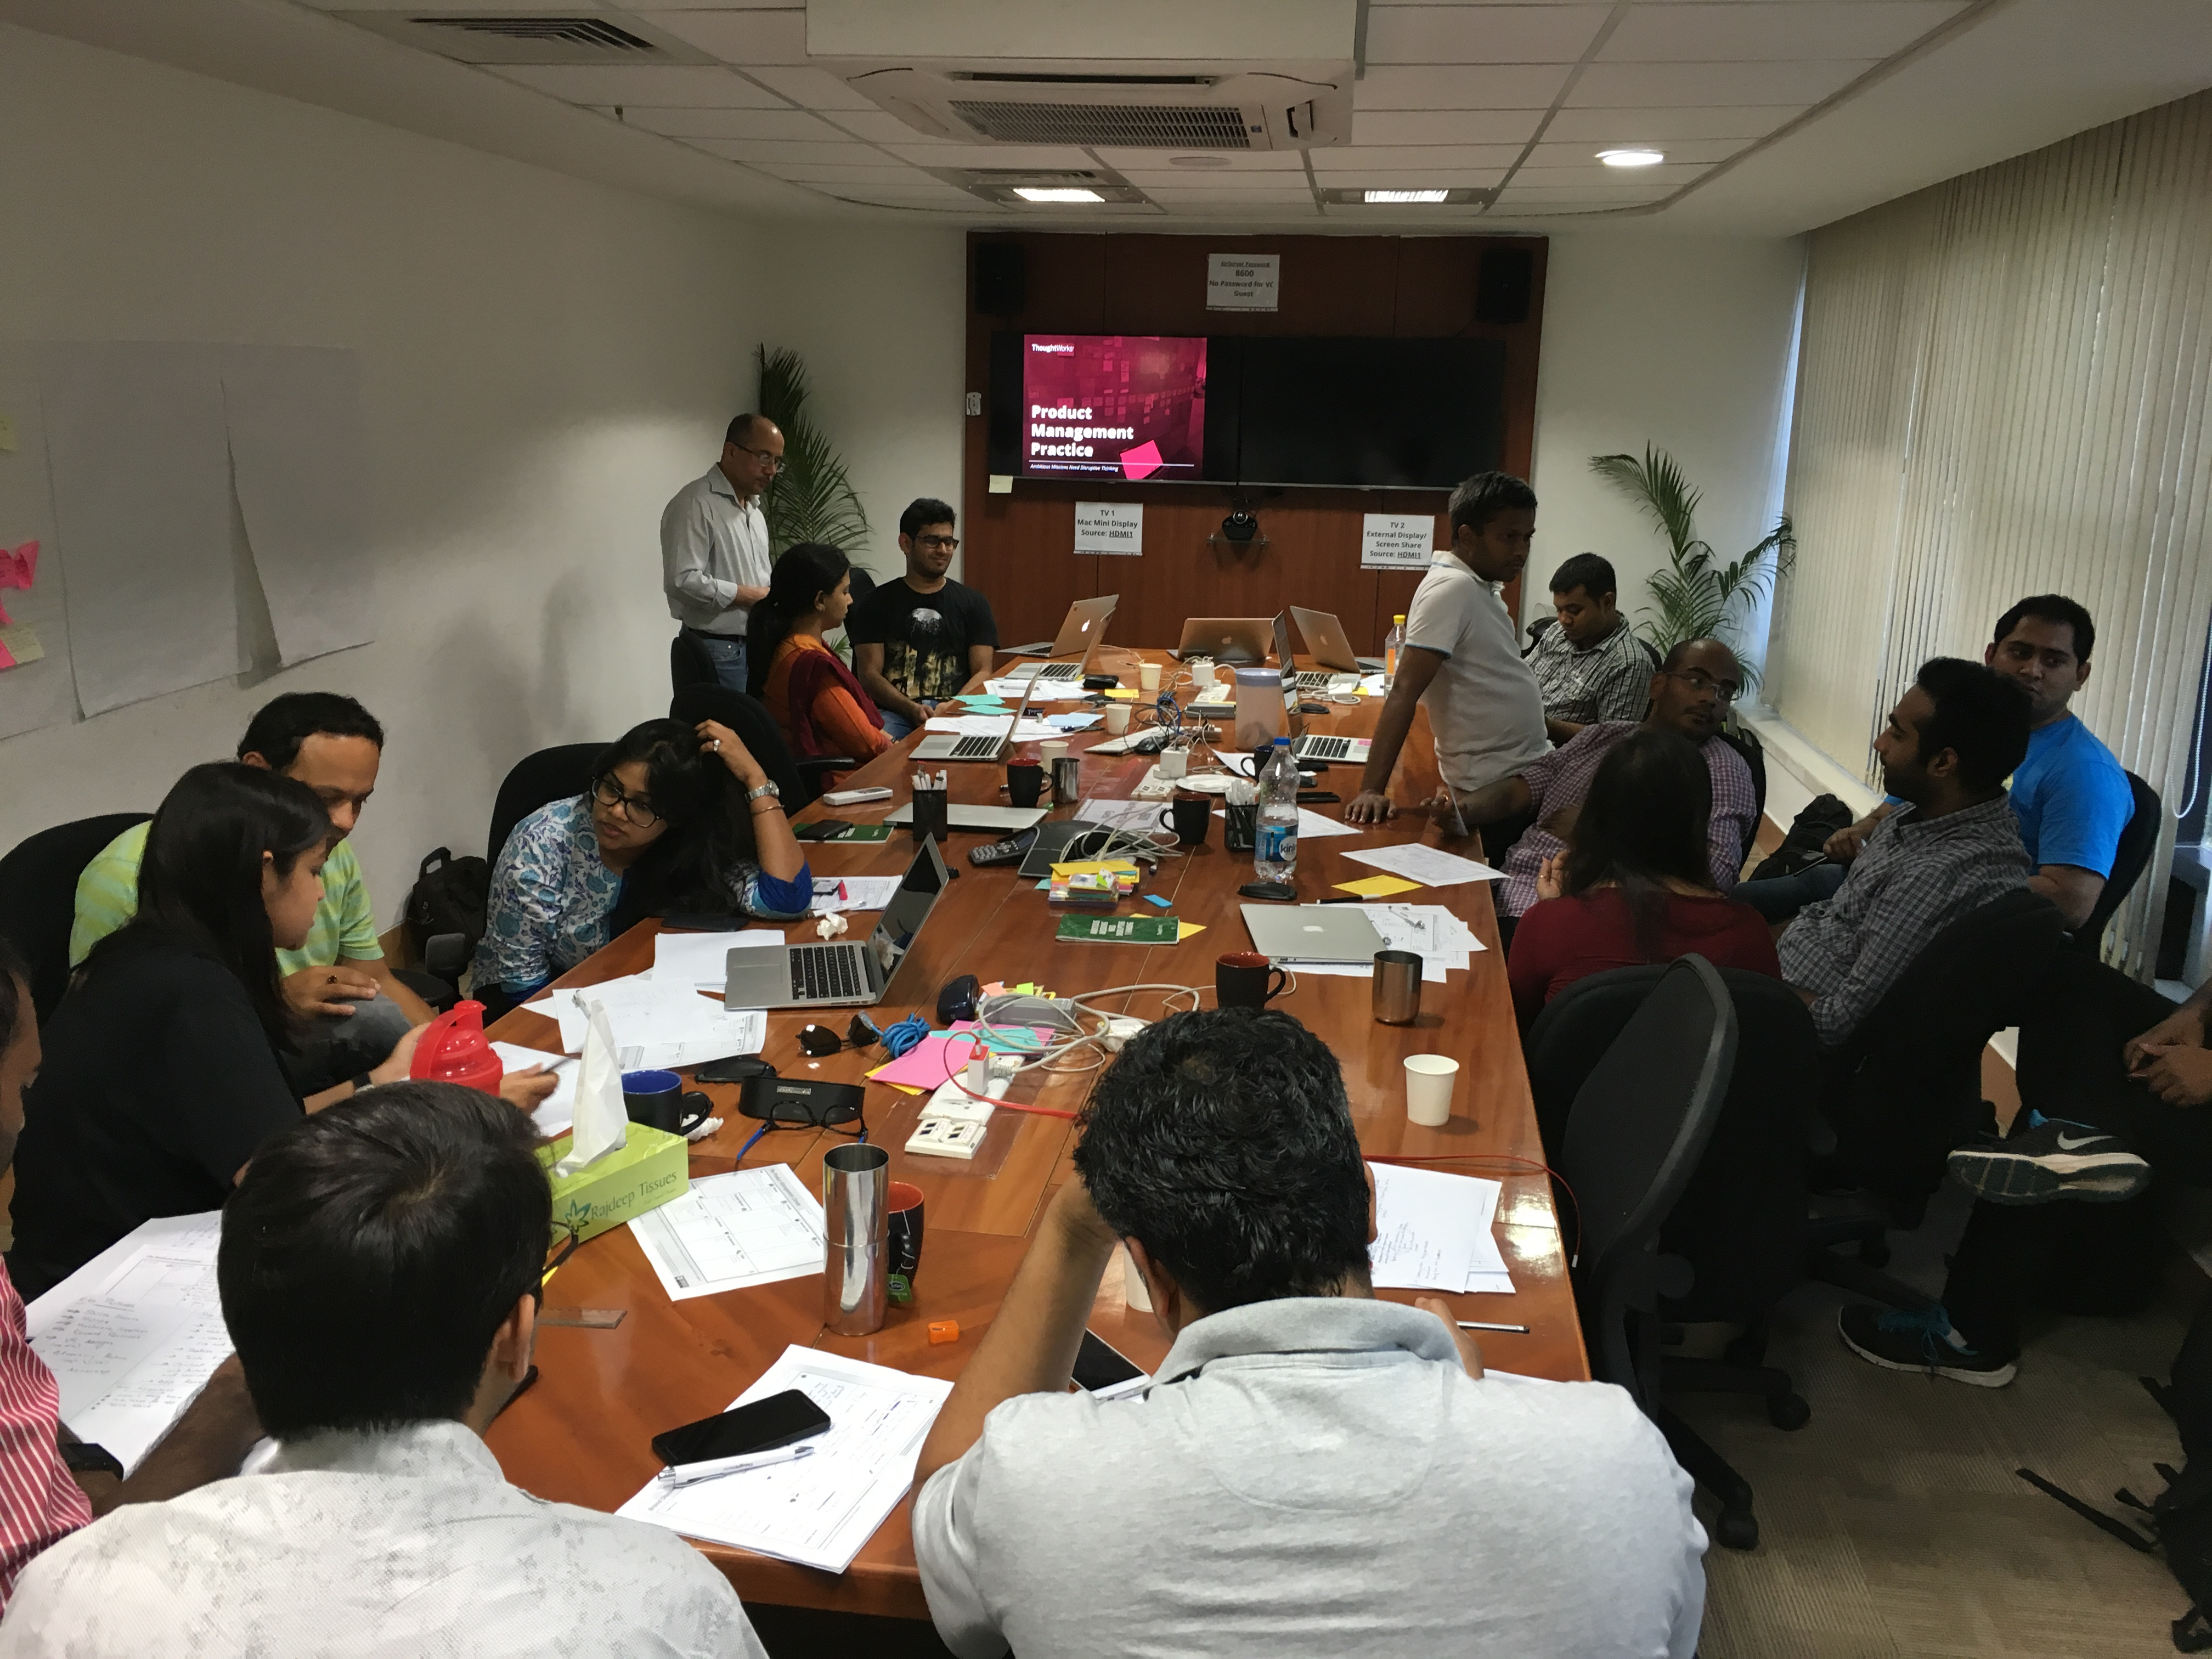 Product Management Workshop in ThoughtWorks, Bangalore